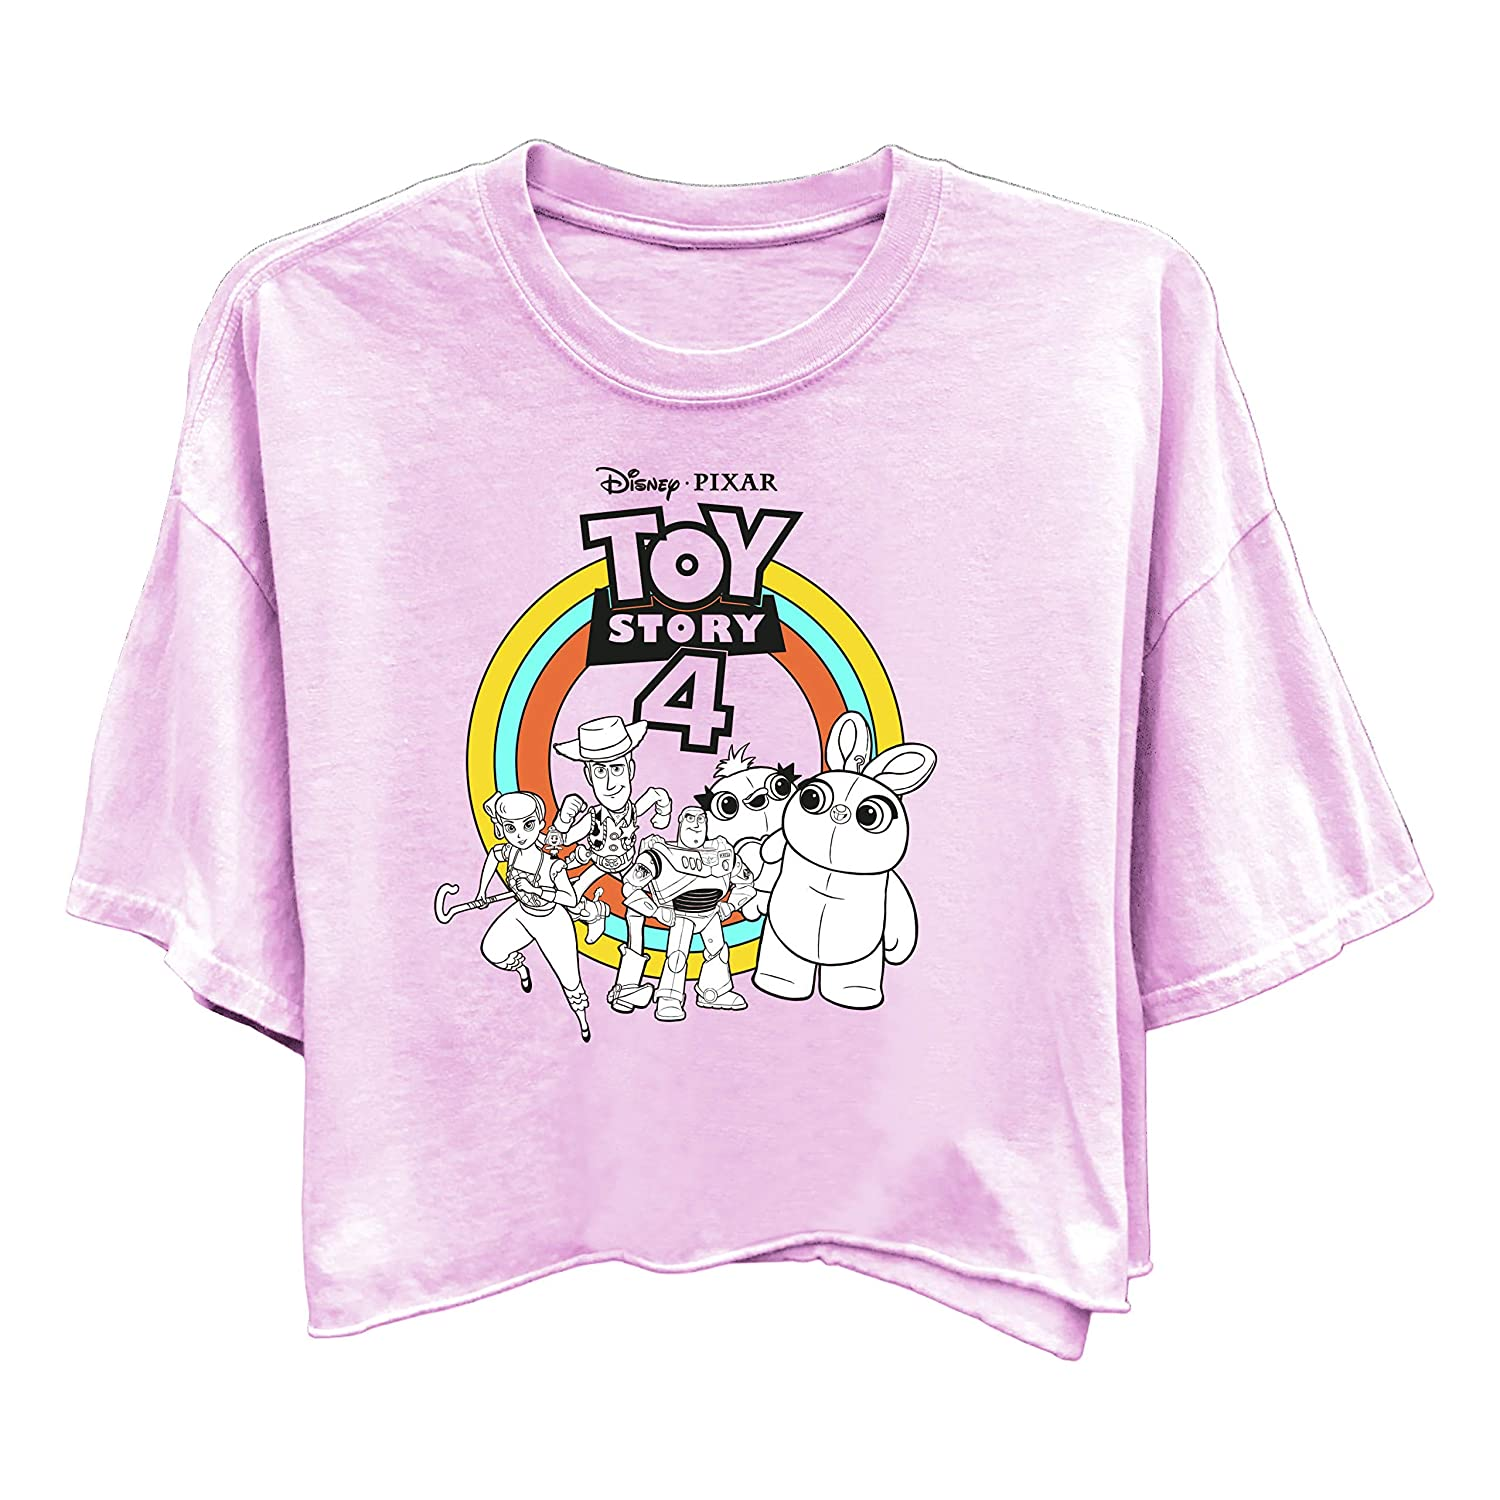 Ladies Classic Toy Story Tee Buzz Lightyear and Woody Washed Short Sleeve Tee Ladies Toy Story Fashion Shirt